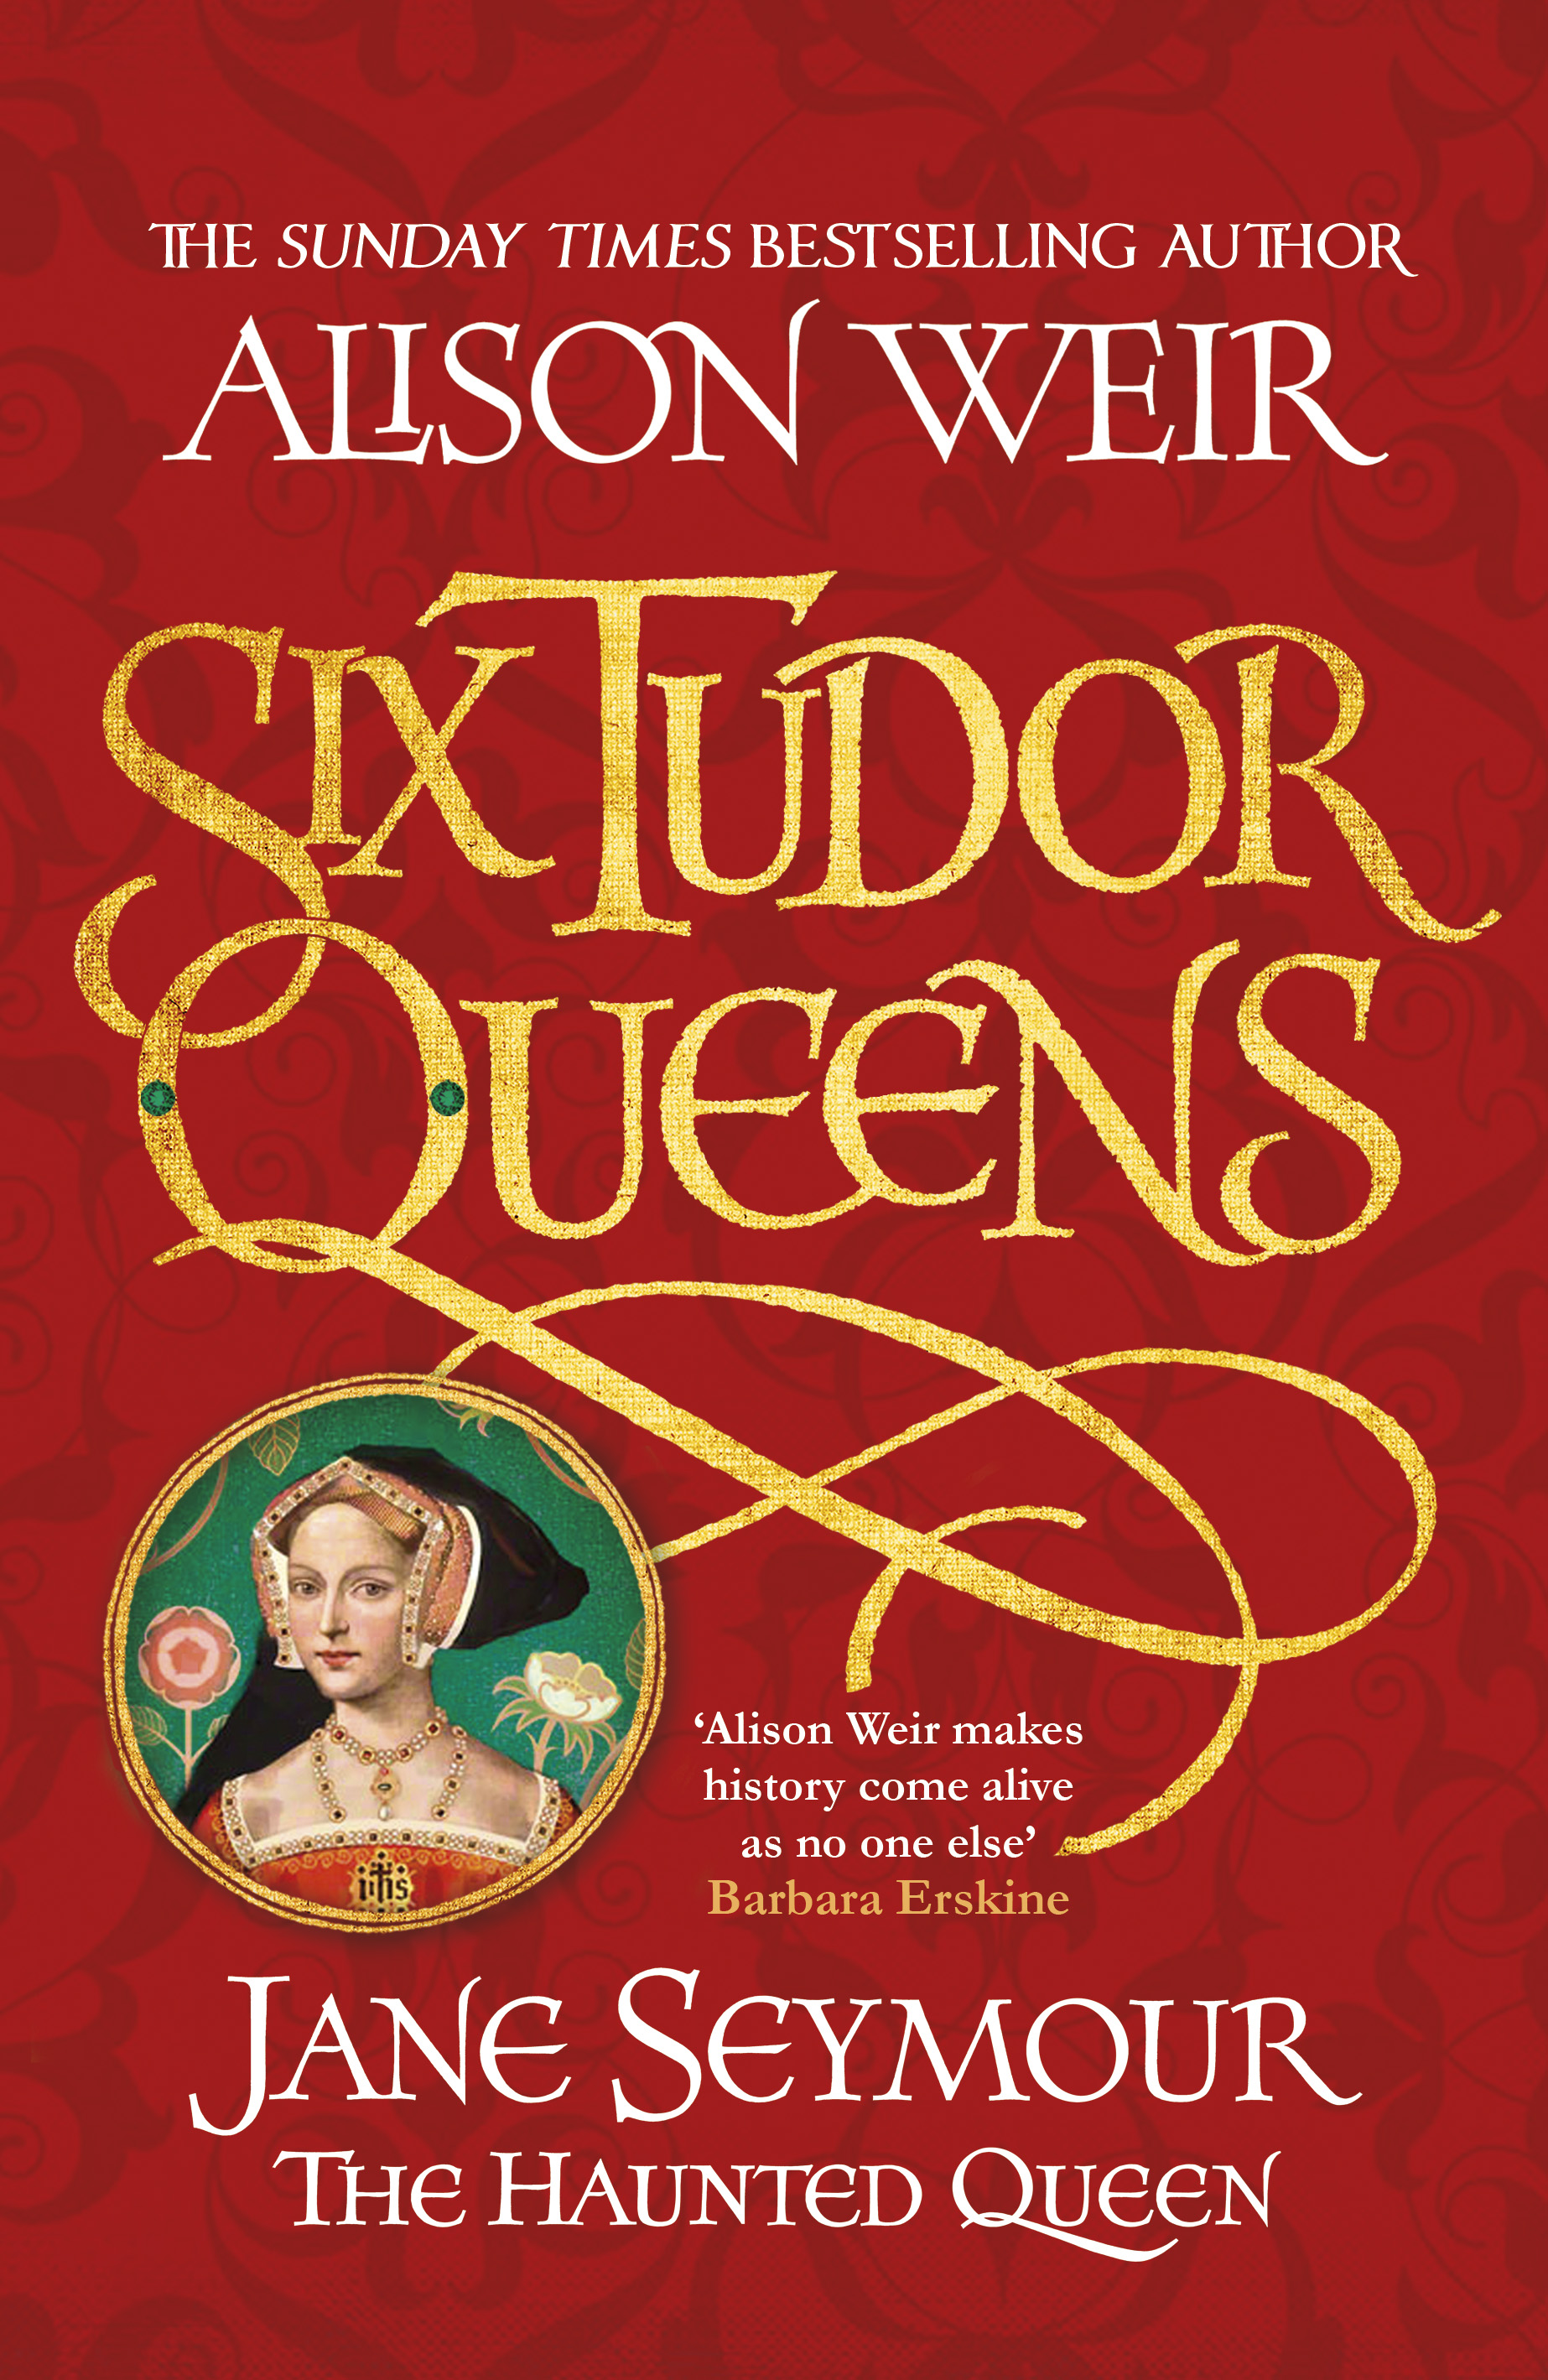 Alison Weir - The Official Site of Author and Historian